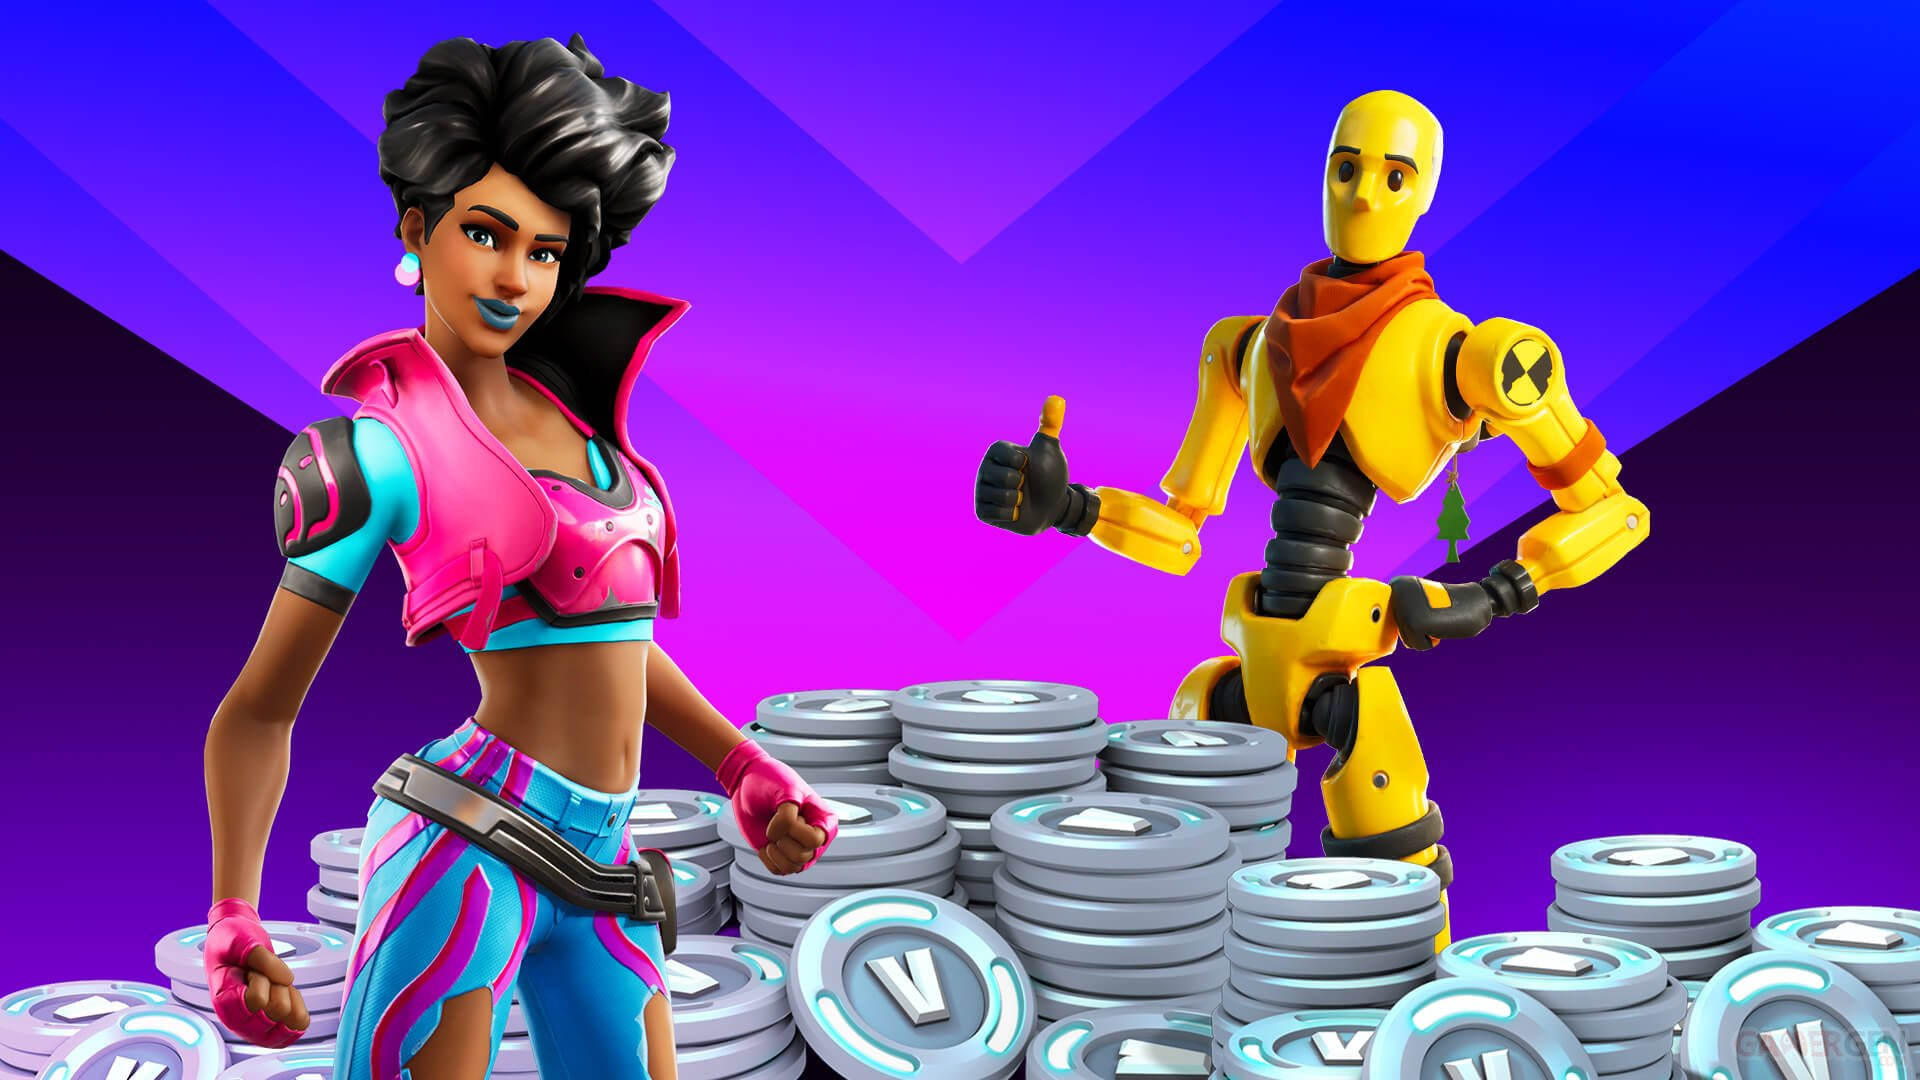 Epic Games attaque Apple en justice après le retrait de Fortnite — Antitrust